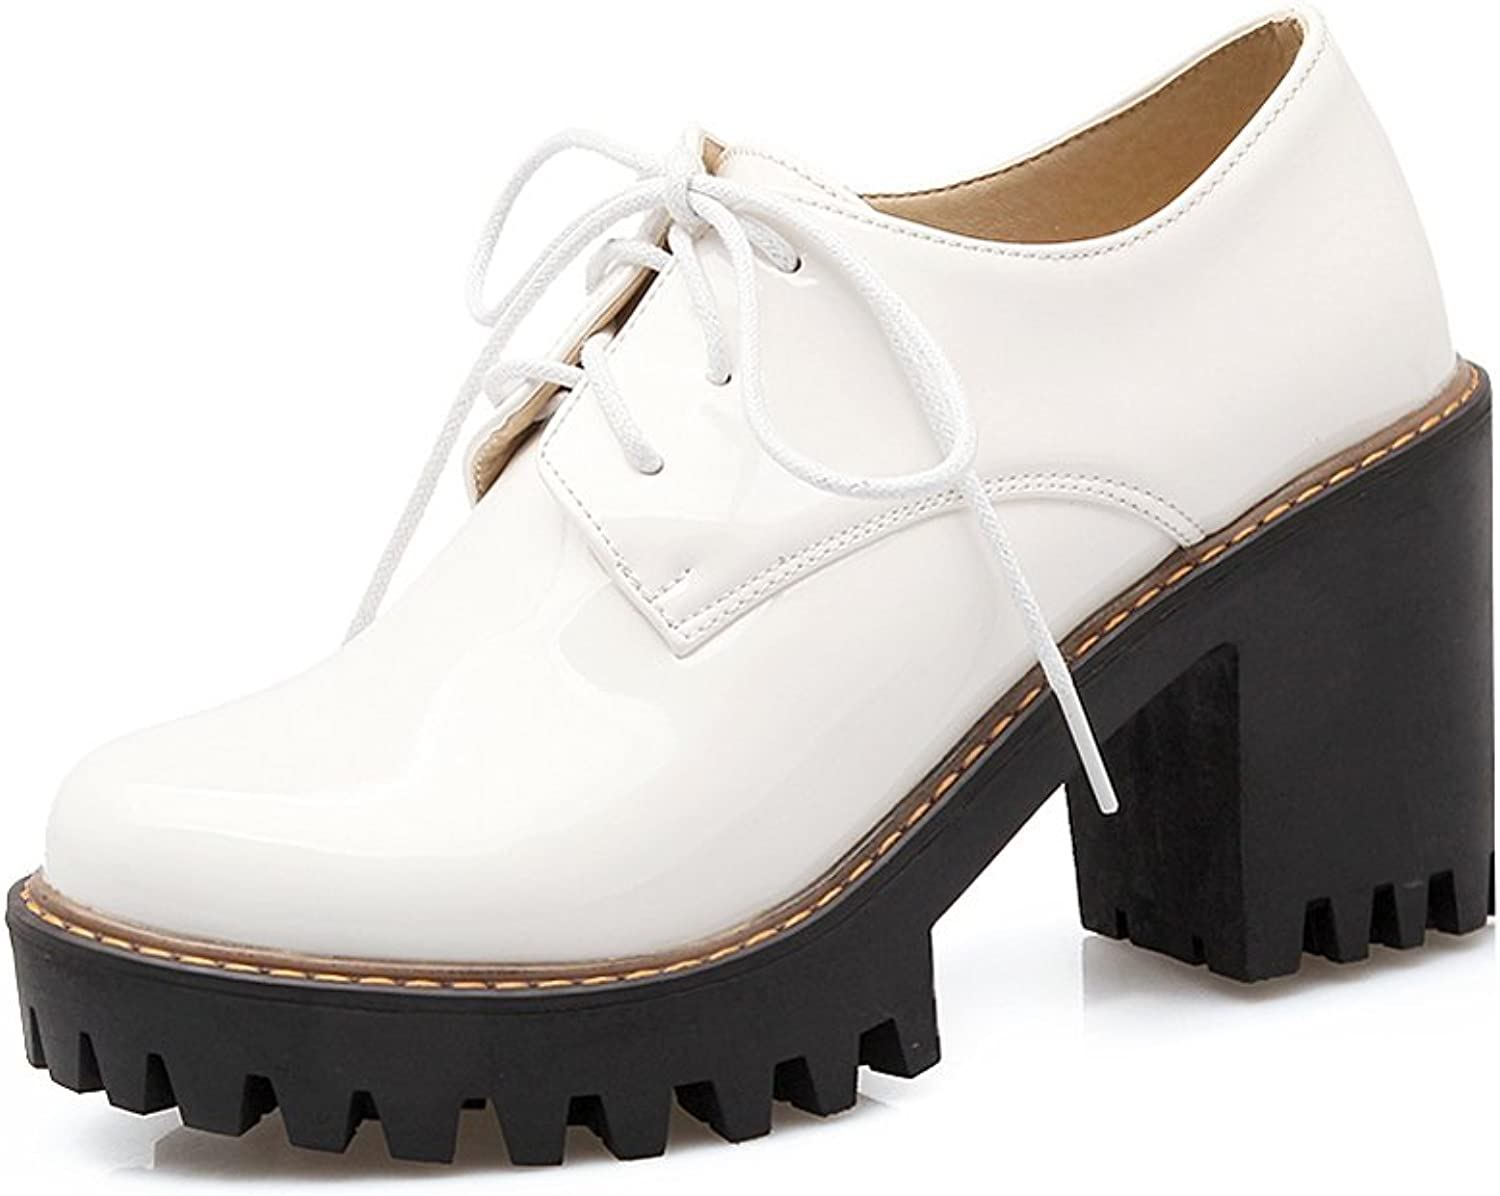 Lucksender Womens Lace Up Block High Heel Oxford shoes